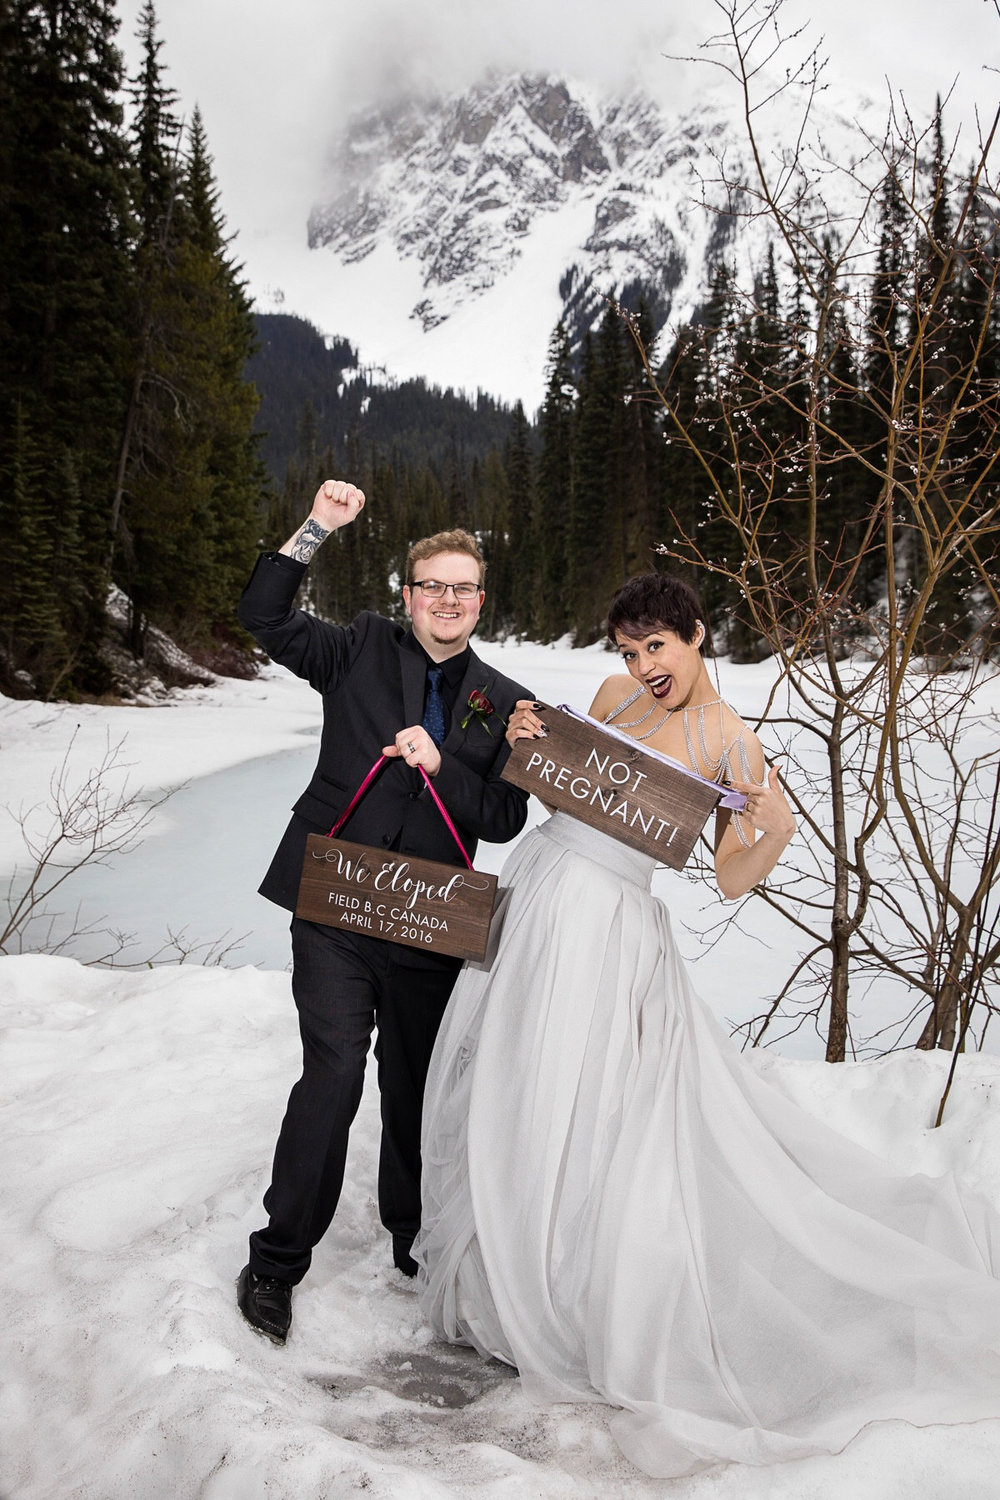 we eloped not prenant sign.jpg